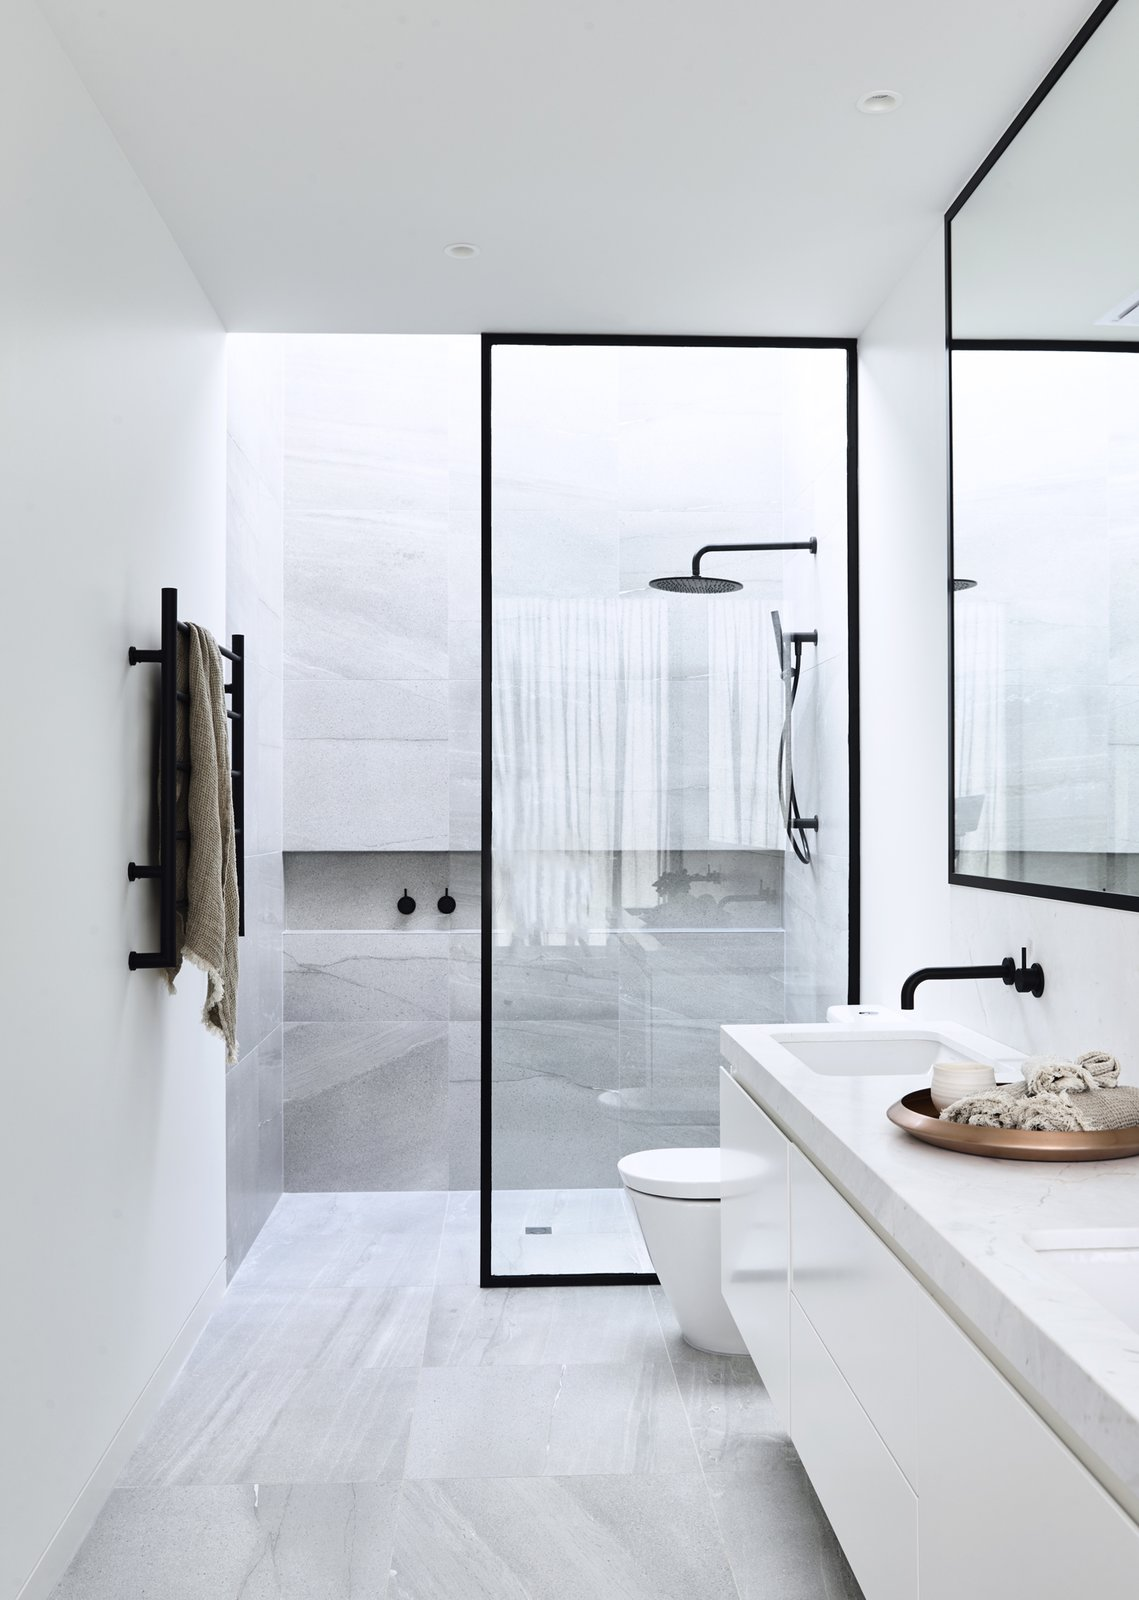 Bath, Marble, Porcelain Tile, Open, Porcelain Tile, Ceiling, Drop In, One Piece, and Freestanding Canny 'The New' Ensuite  Best Bath Porcelain Tile Drop In Freestanding Photos from The New